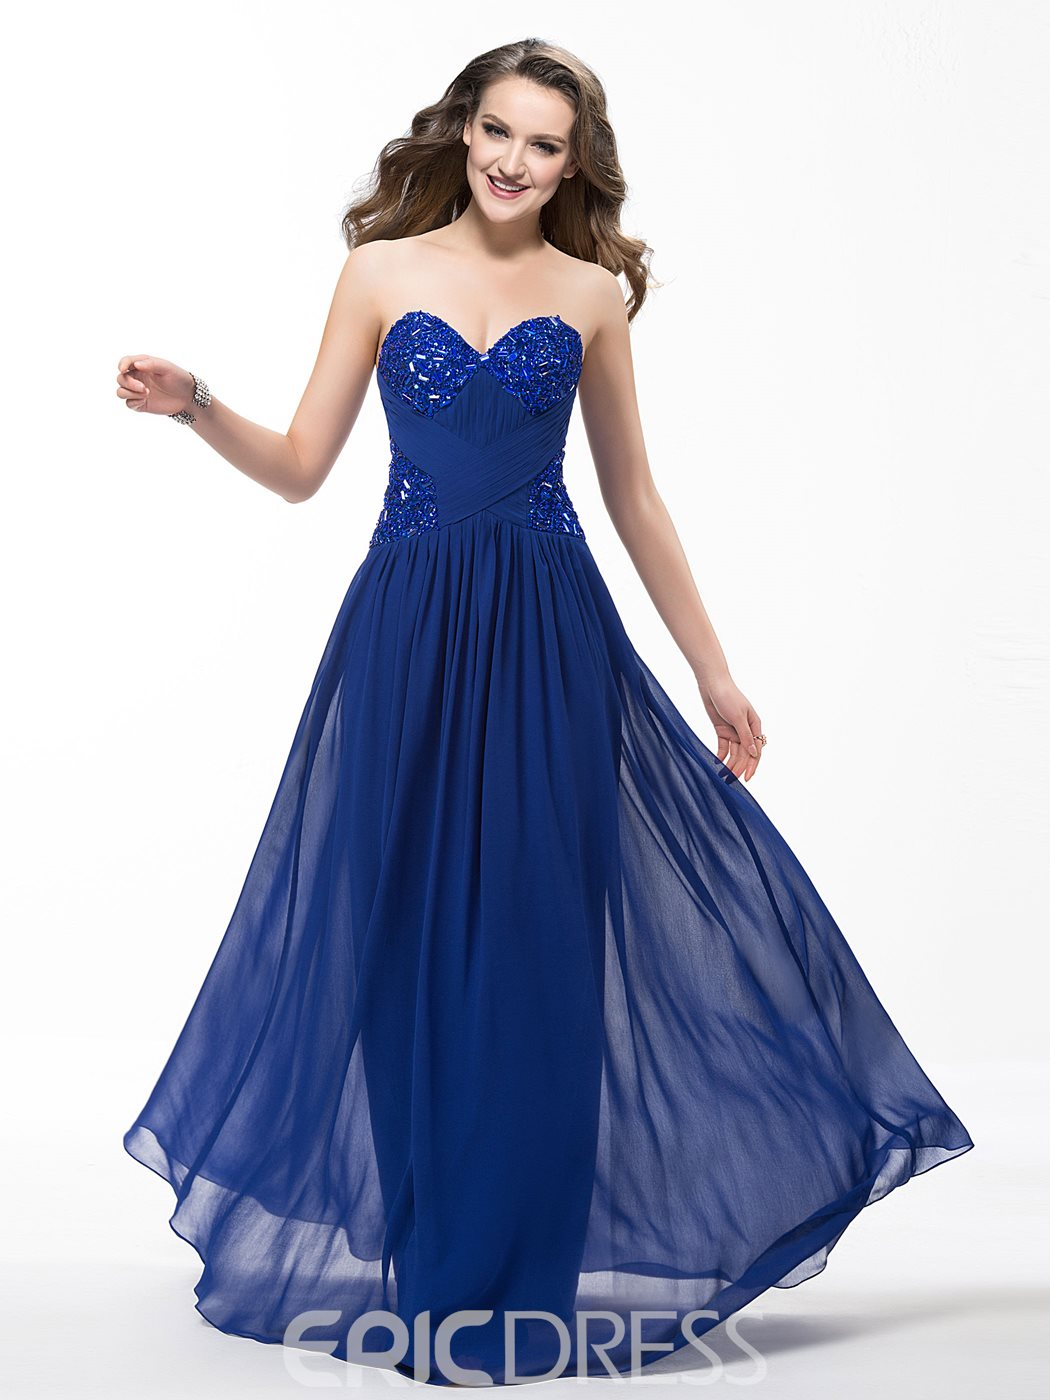 Bespoke A-Line Floor Length Sweetheart Ruffles Prom Dress